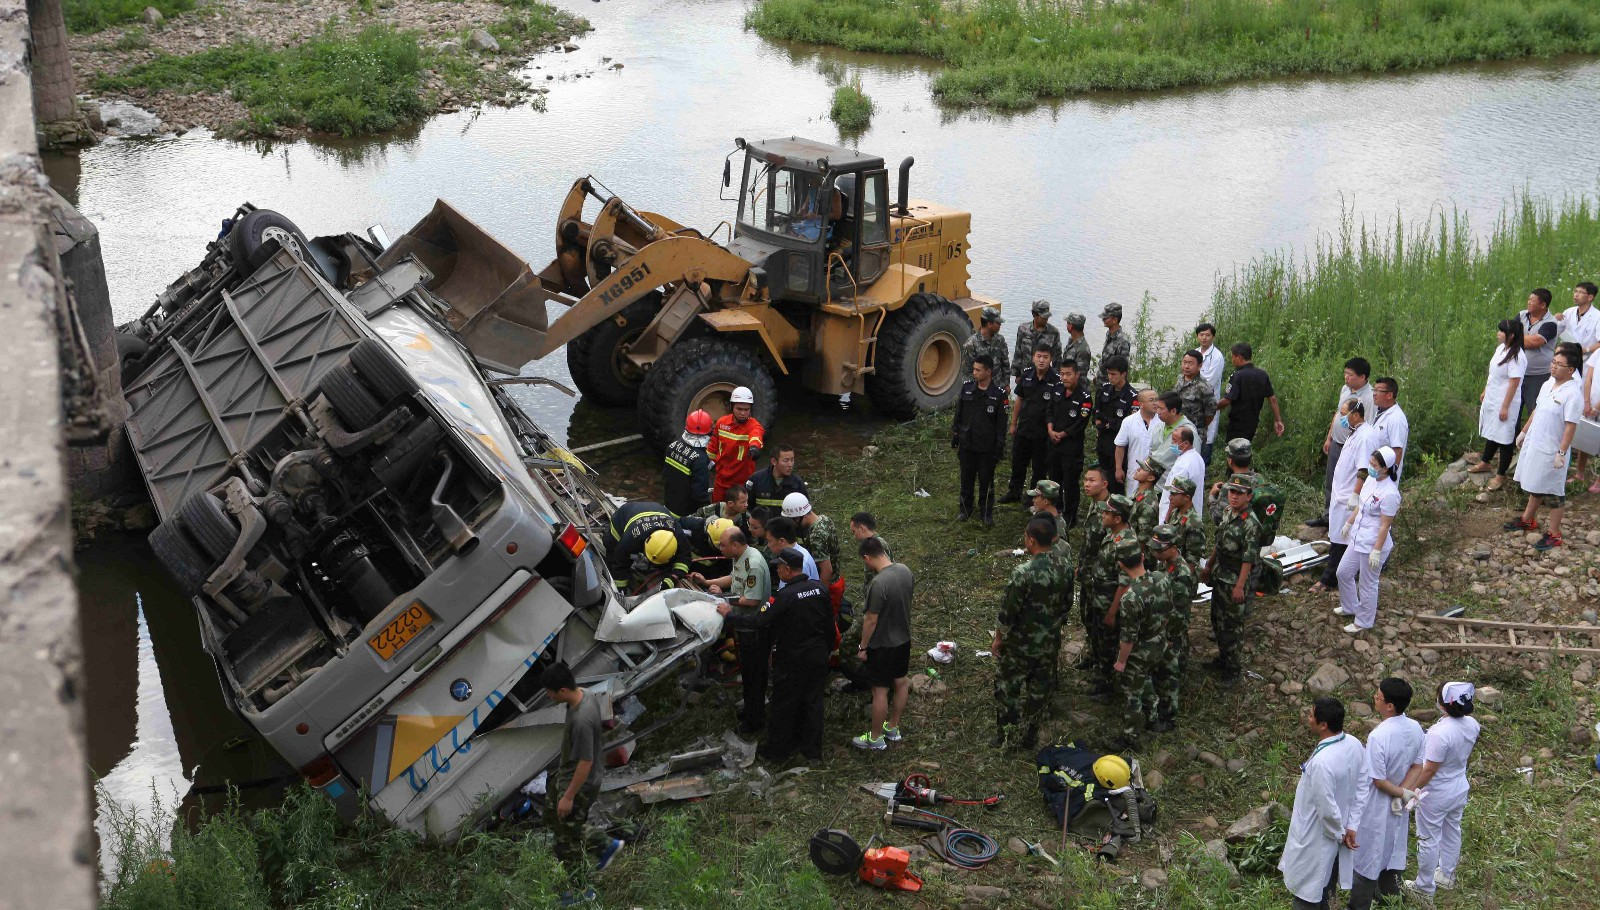 S. Korea sends emergency team to China for bus accident aftermath